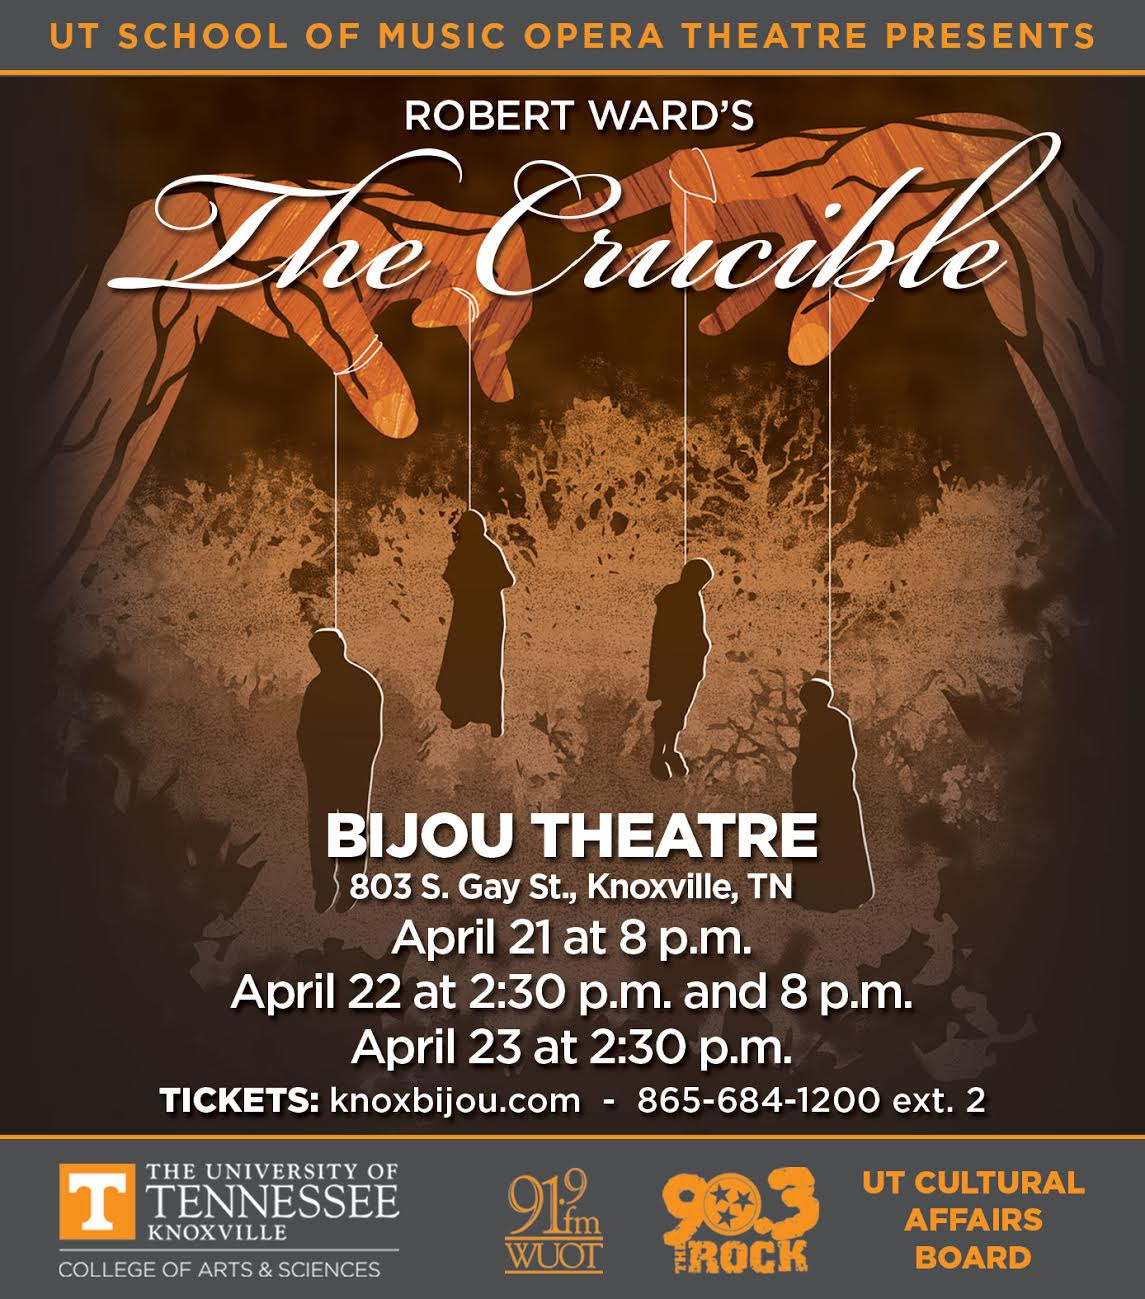 Ward's The Crucible presented by University of Tennessee Opera Theatre